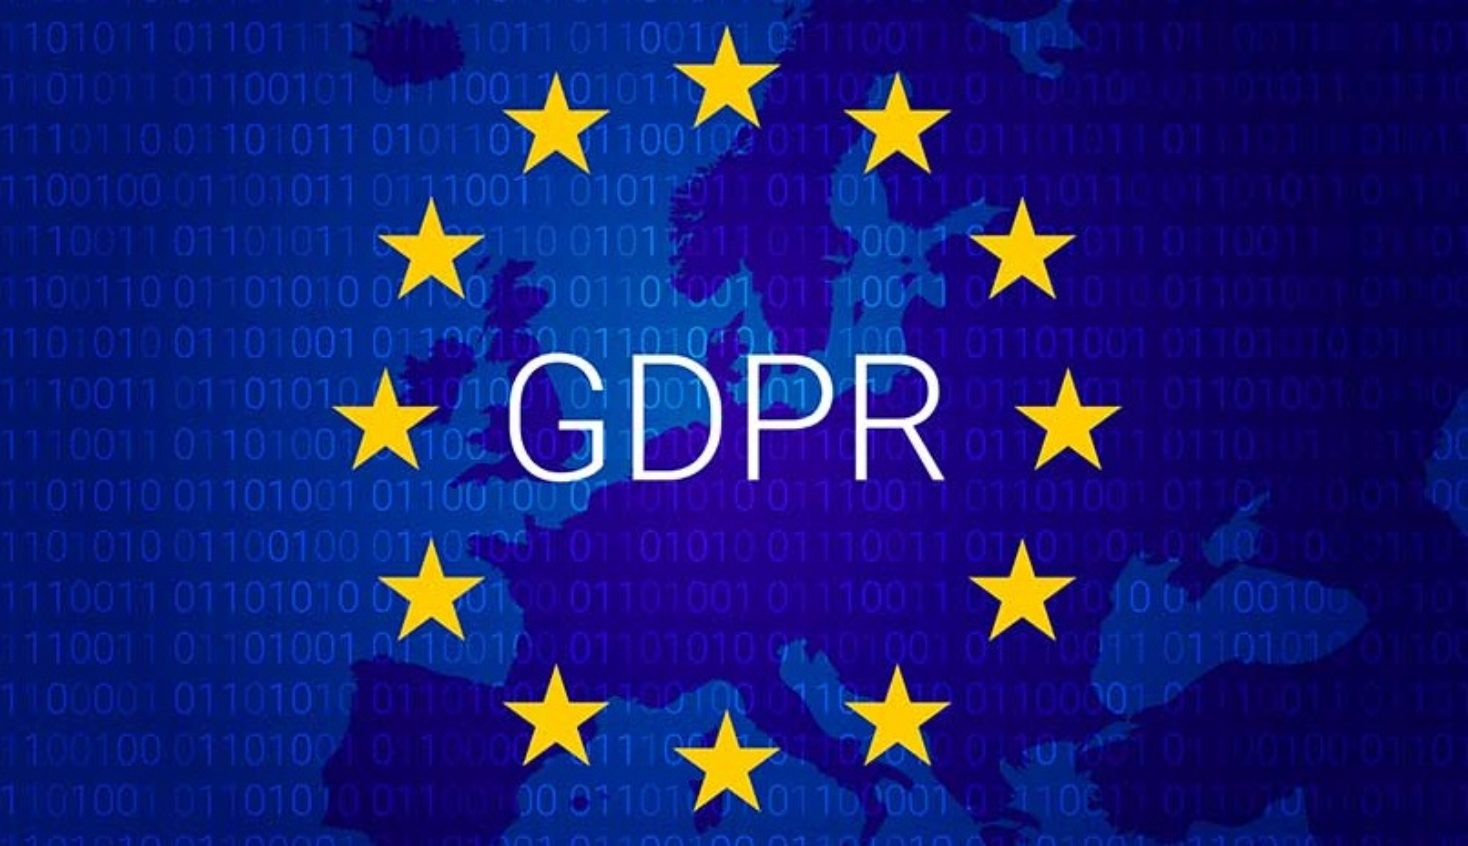 GDPR – Make a request to access or remove all your personal information